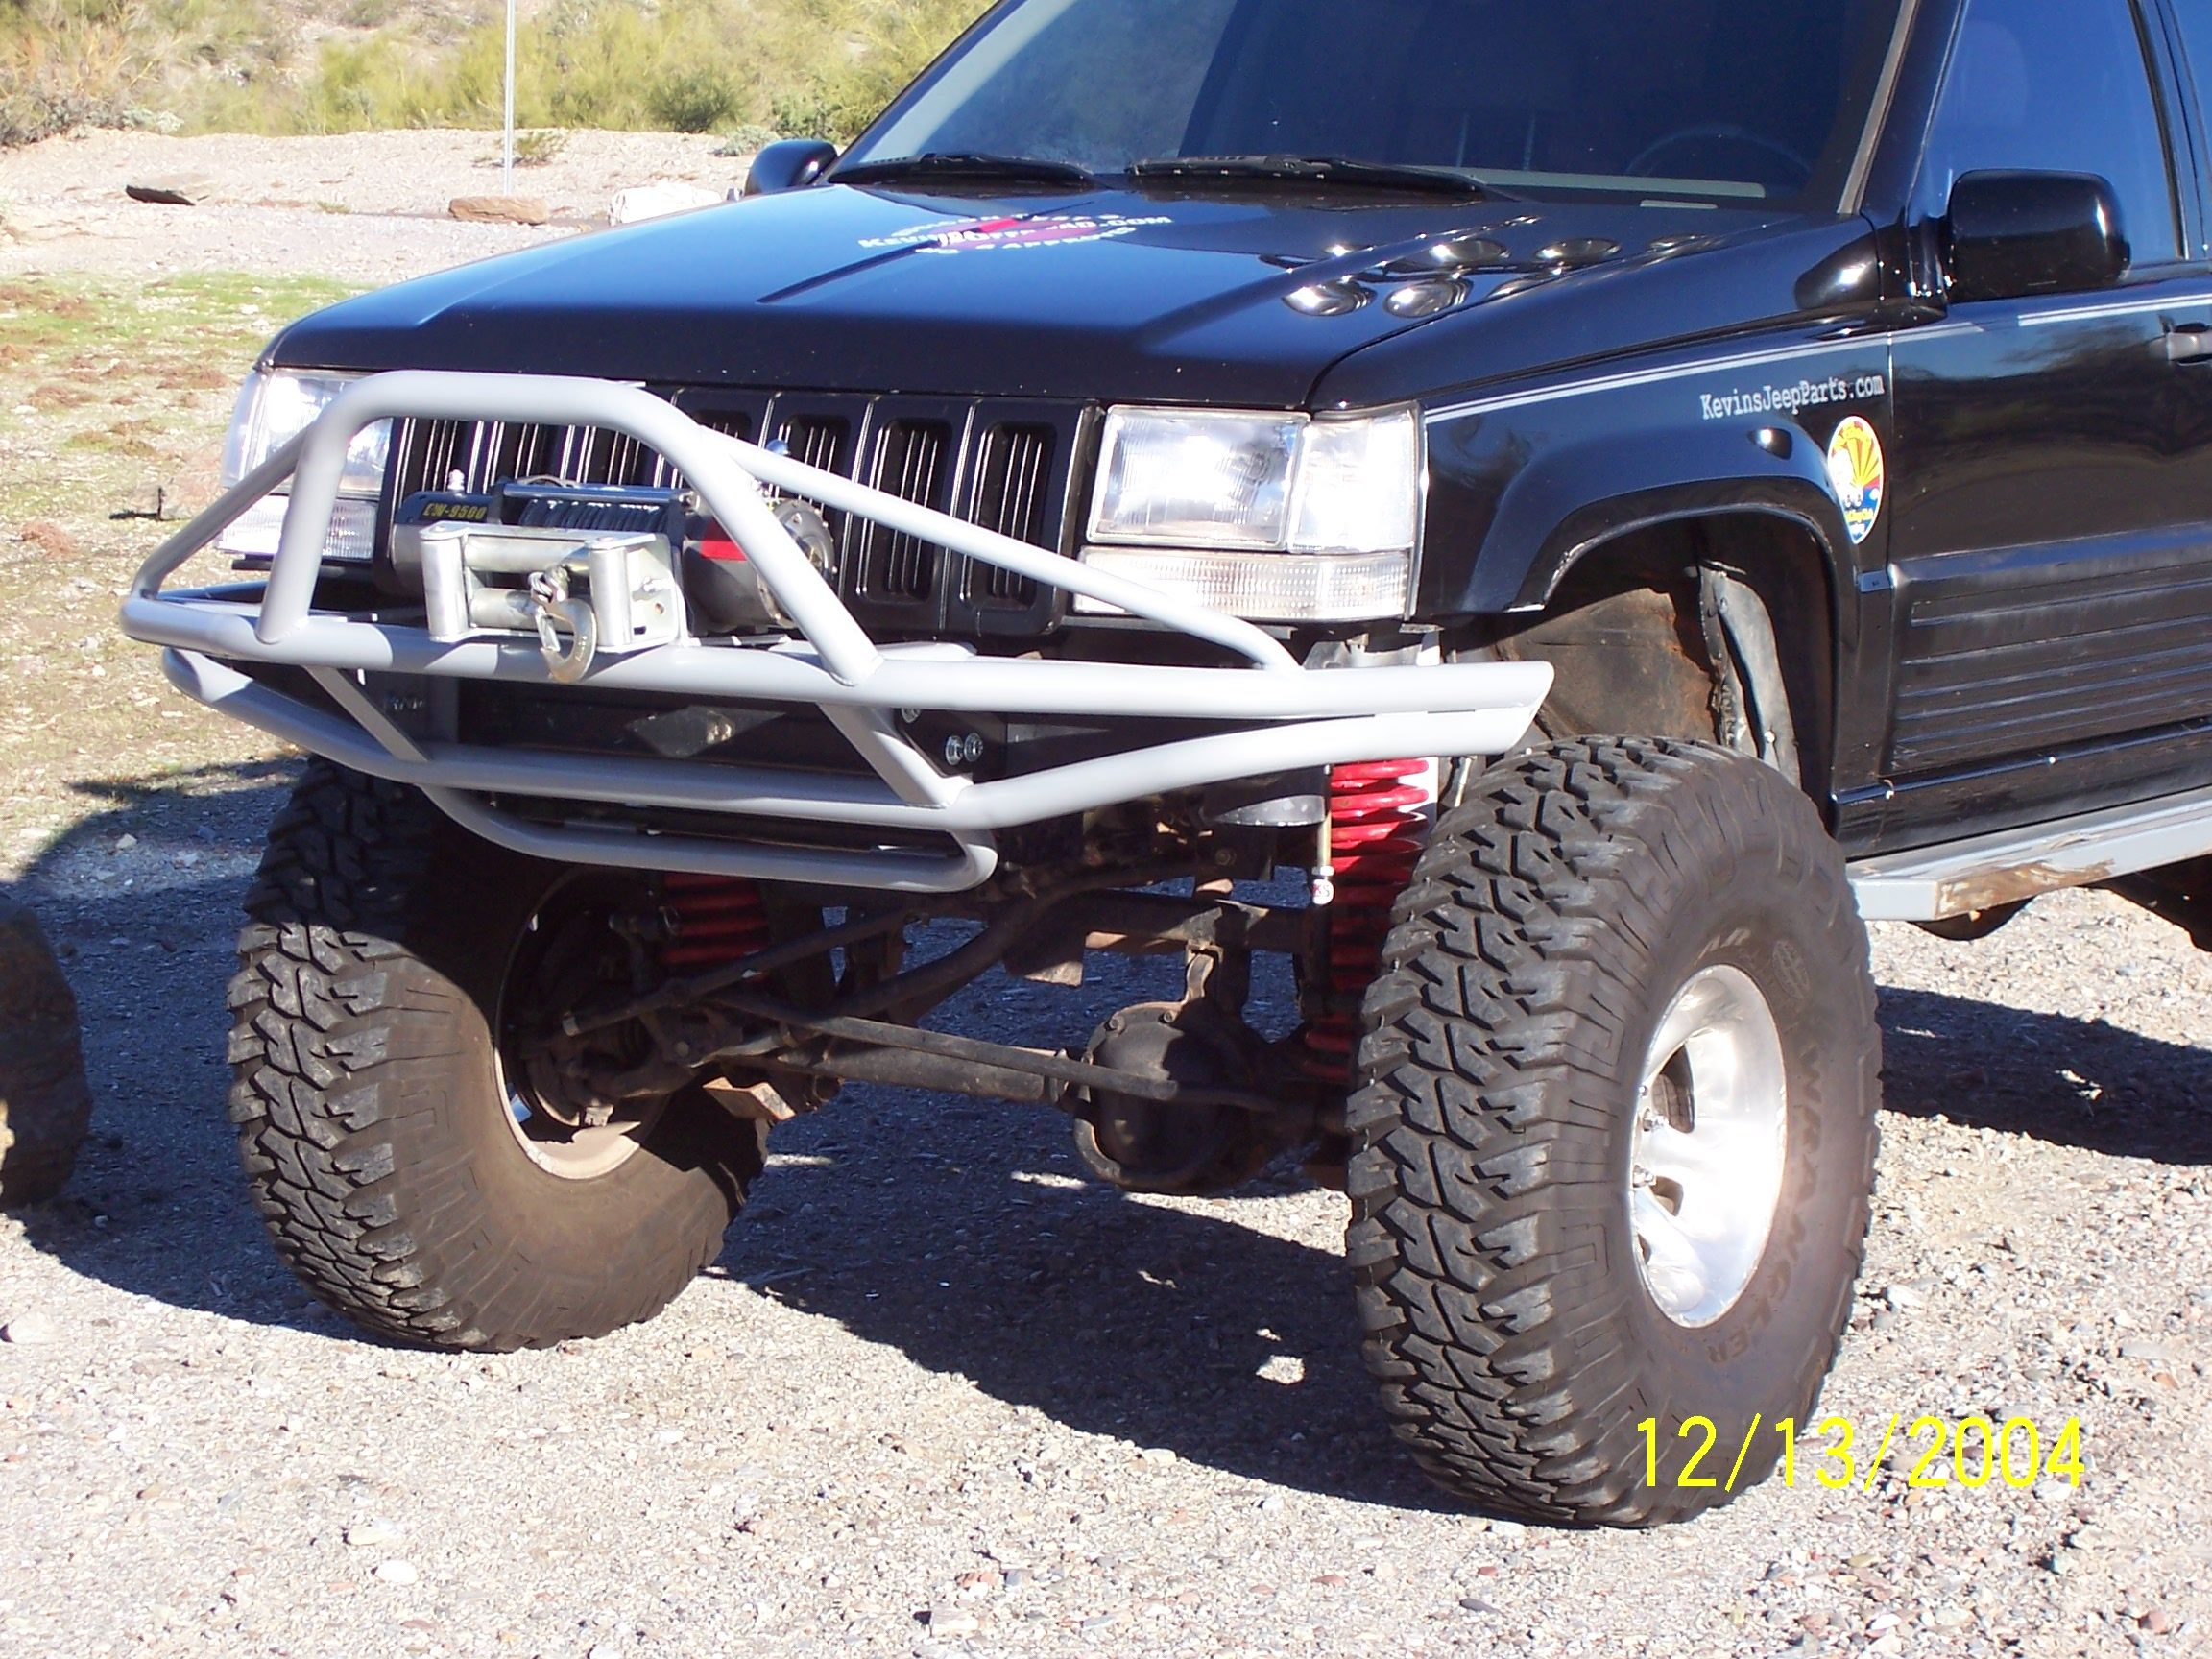 1999 Tj Wrangler Front Suspension View 2001 Jeep Wrangler Jeep Yj Jeep Wrangler